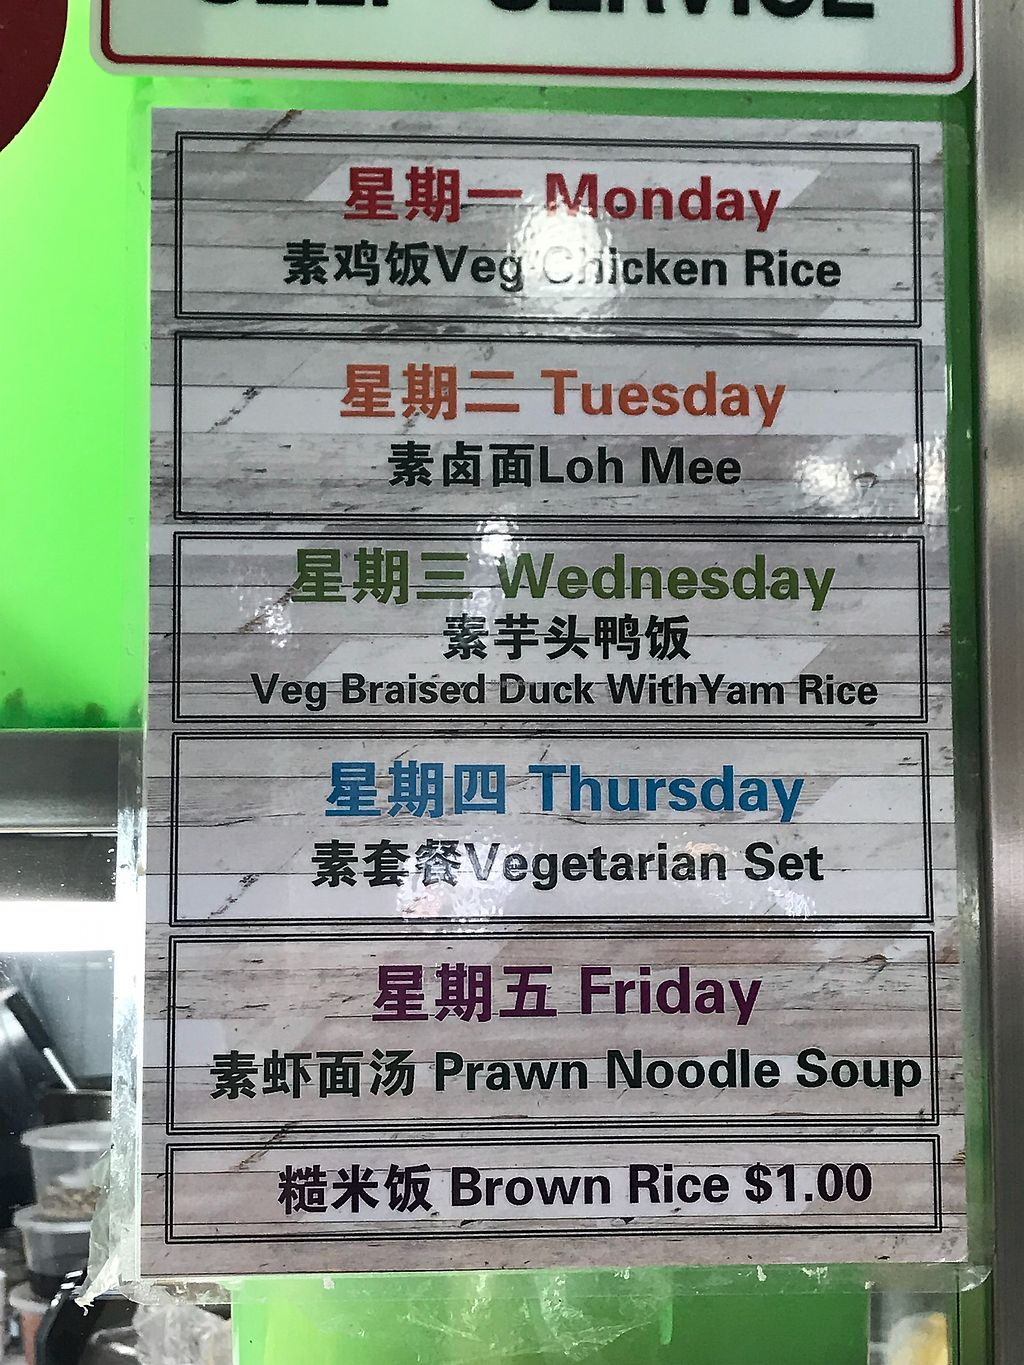 """Photo of Friendly Vegetarian Food Stall  by <a href=""""/members/profile/Veganwang"""">Veganwang</a> <br/>Friendly vegetarian food- daily special  <br/> April 17, 2018  - <a href='/contact/abuse/image/64319/387014'>Report</a>"""